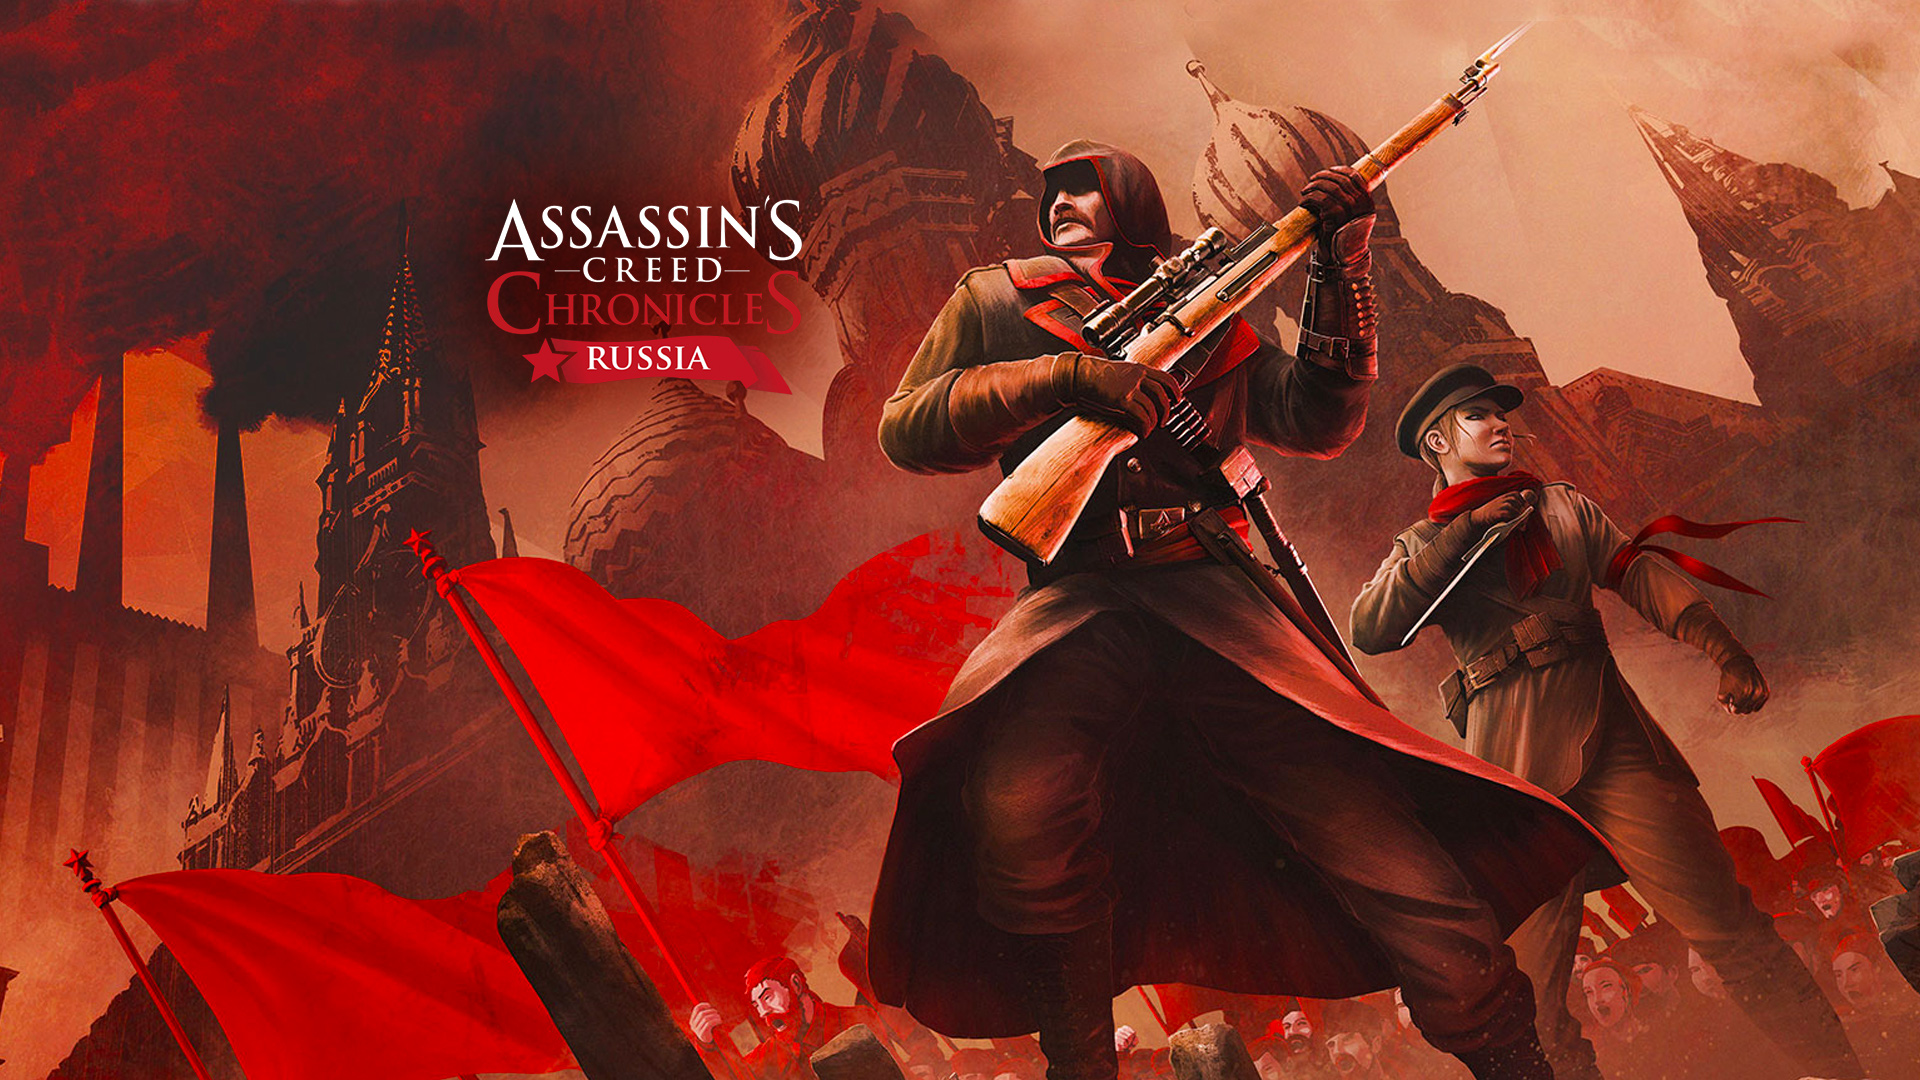 Assassin's Creed Chronicles: Russia And Sonic & All-Stars